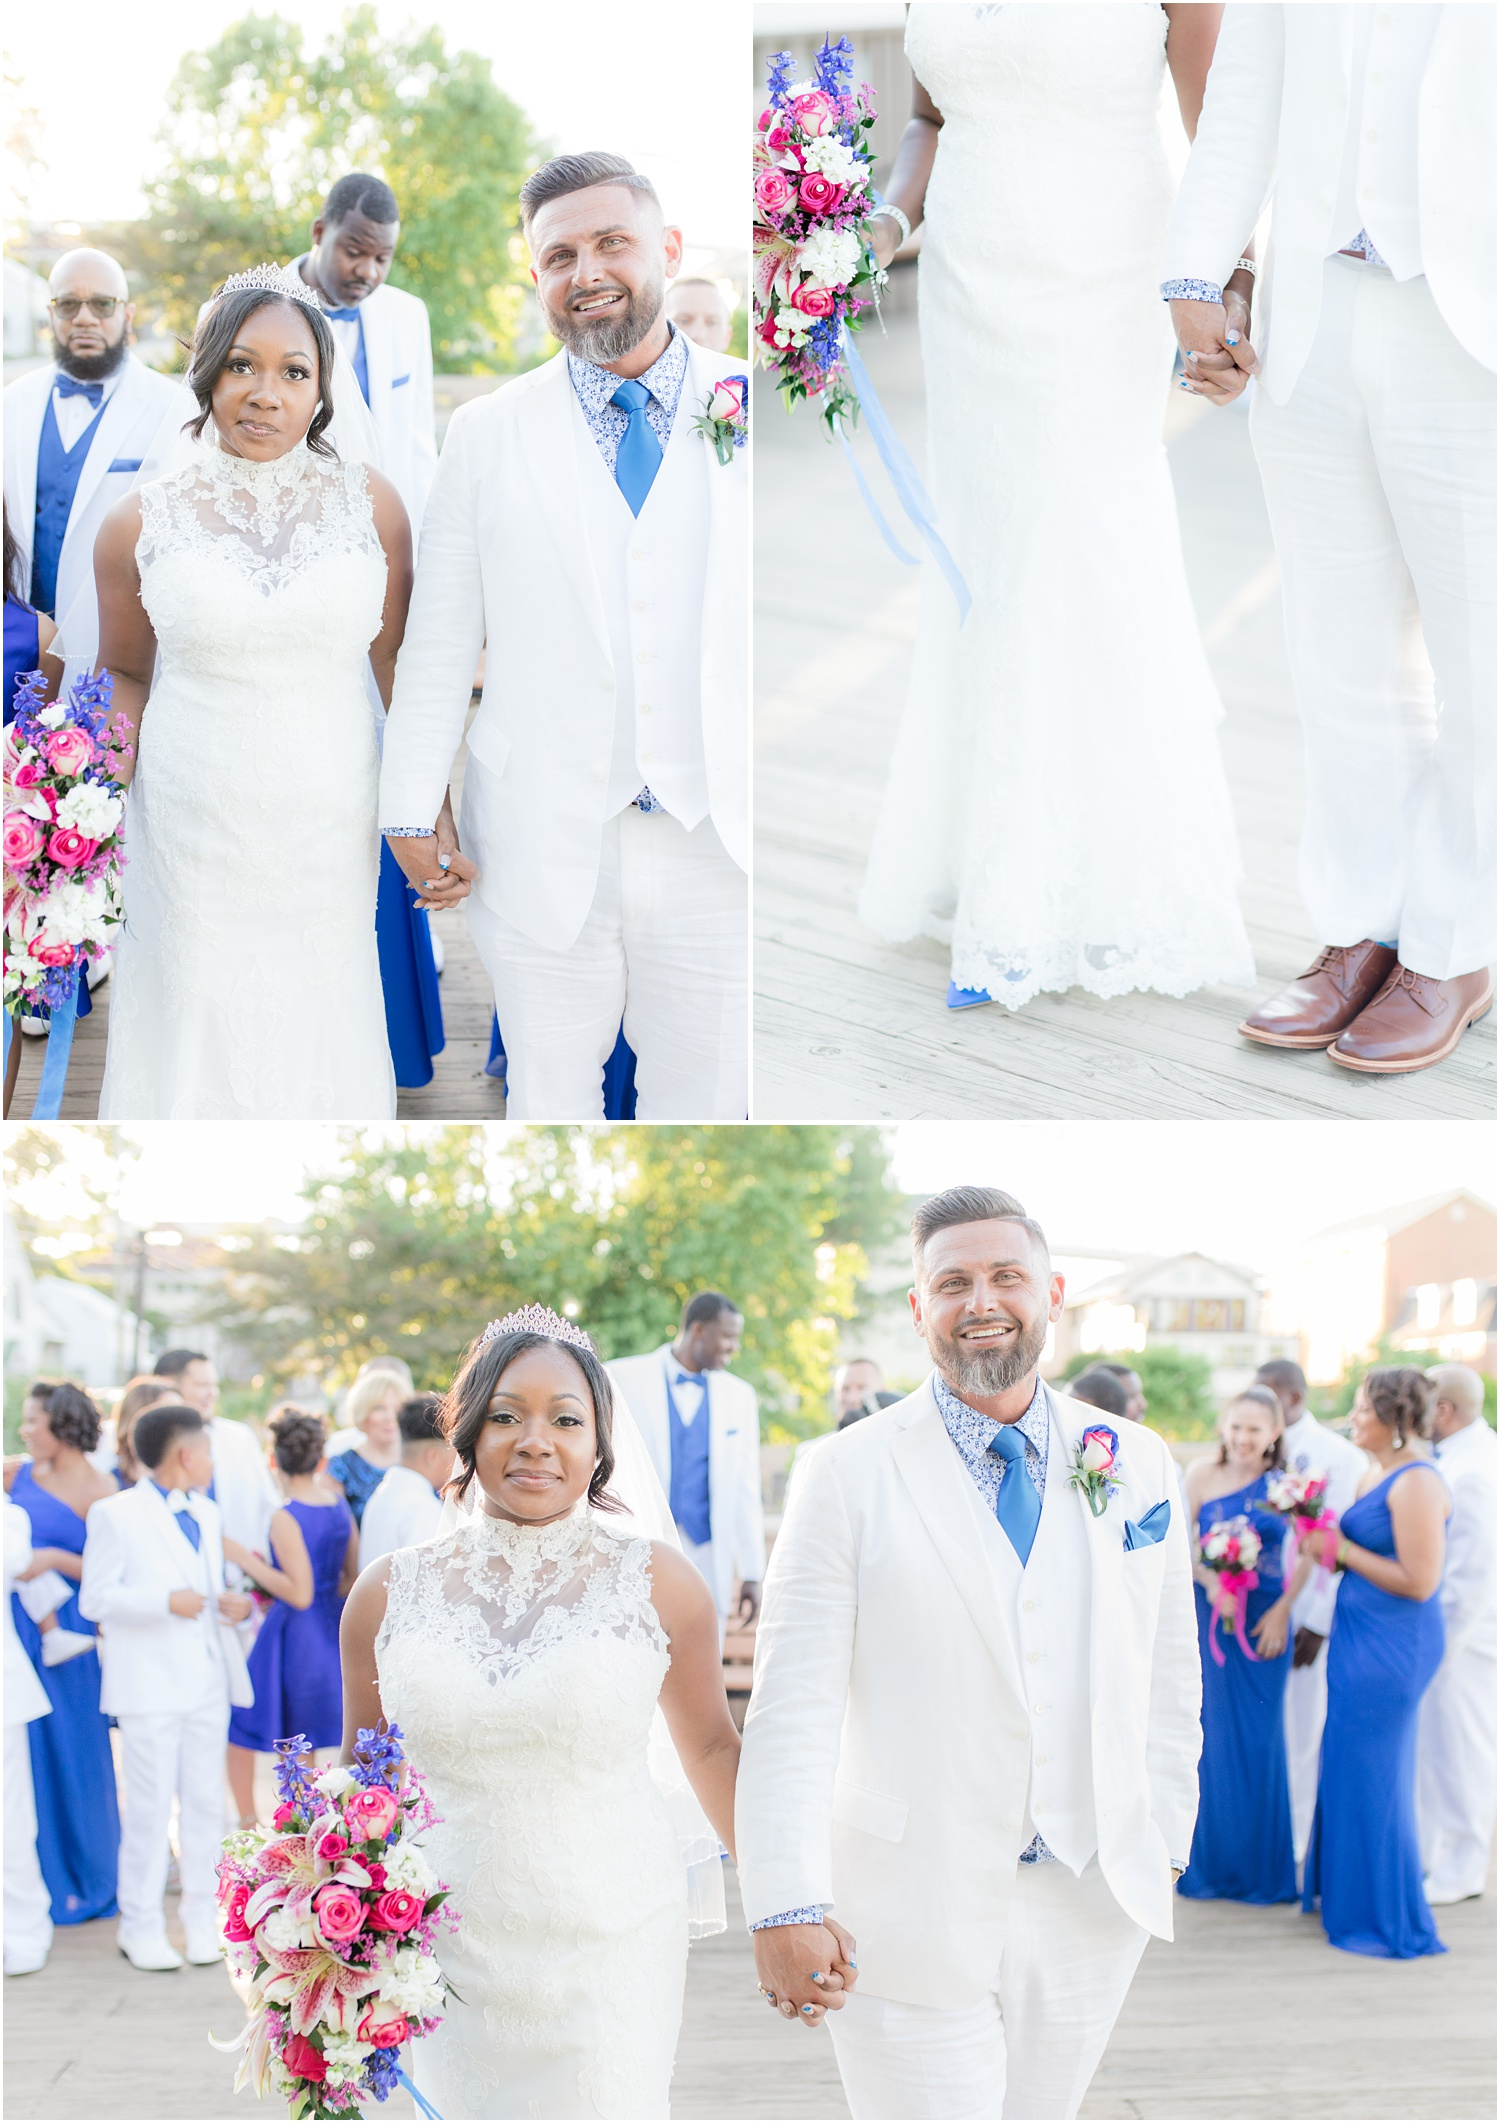 Bride and groom photos in Chesapeake City, MD.